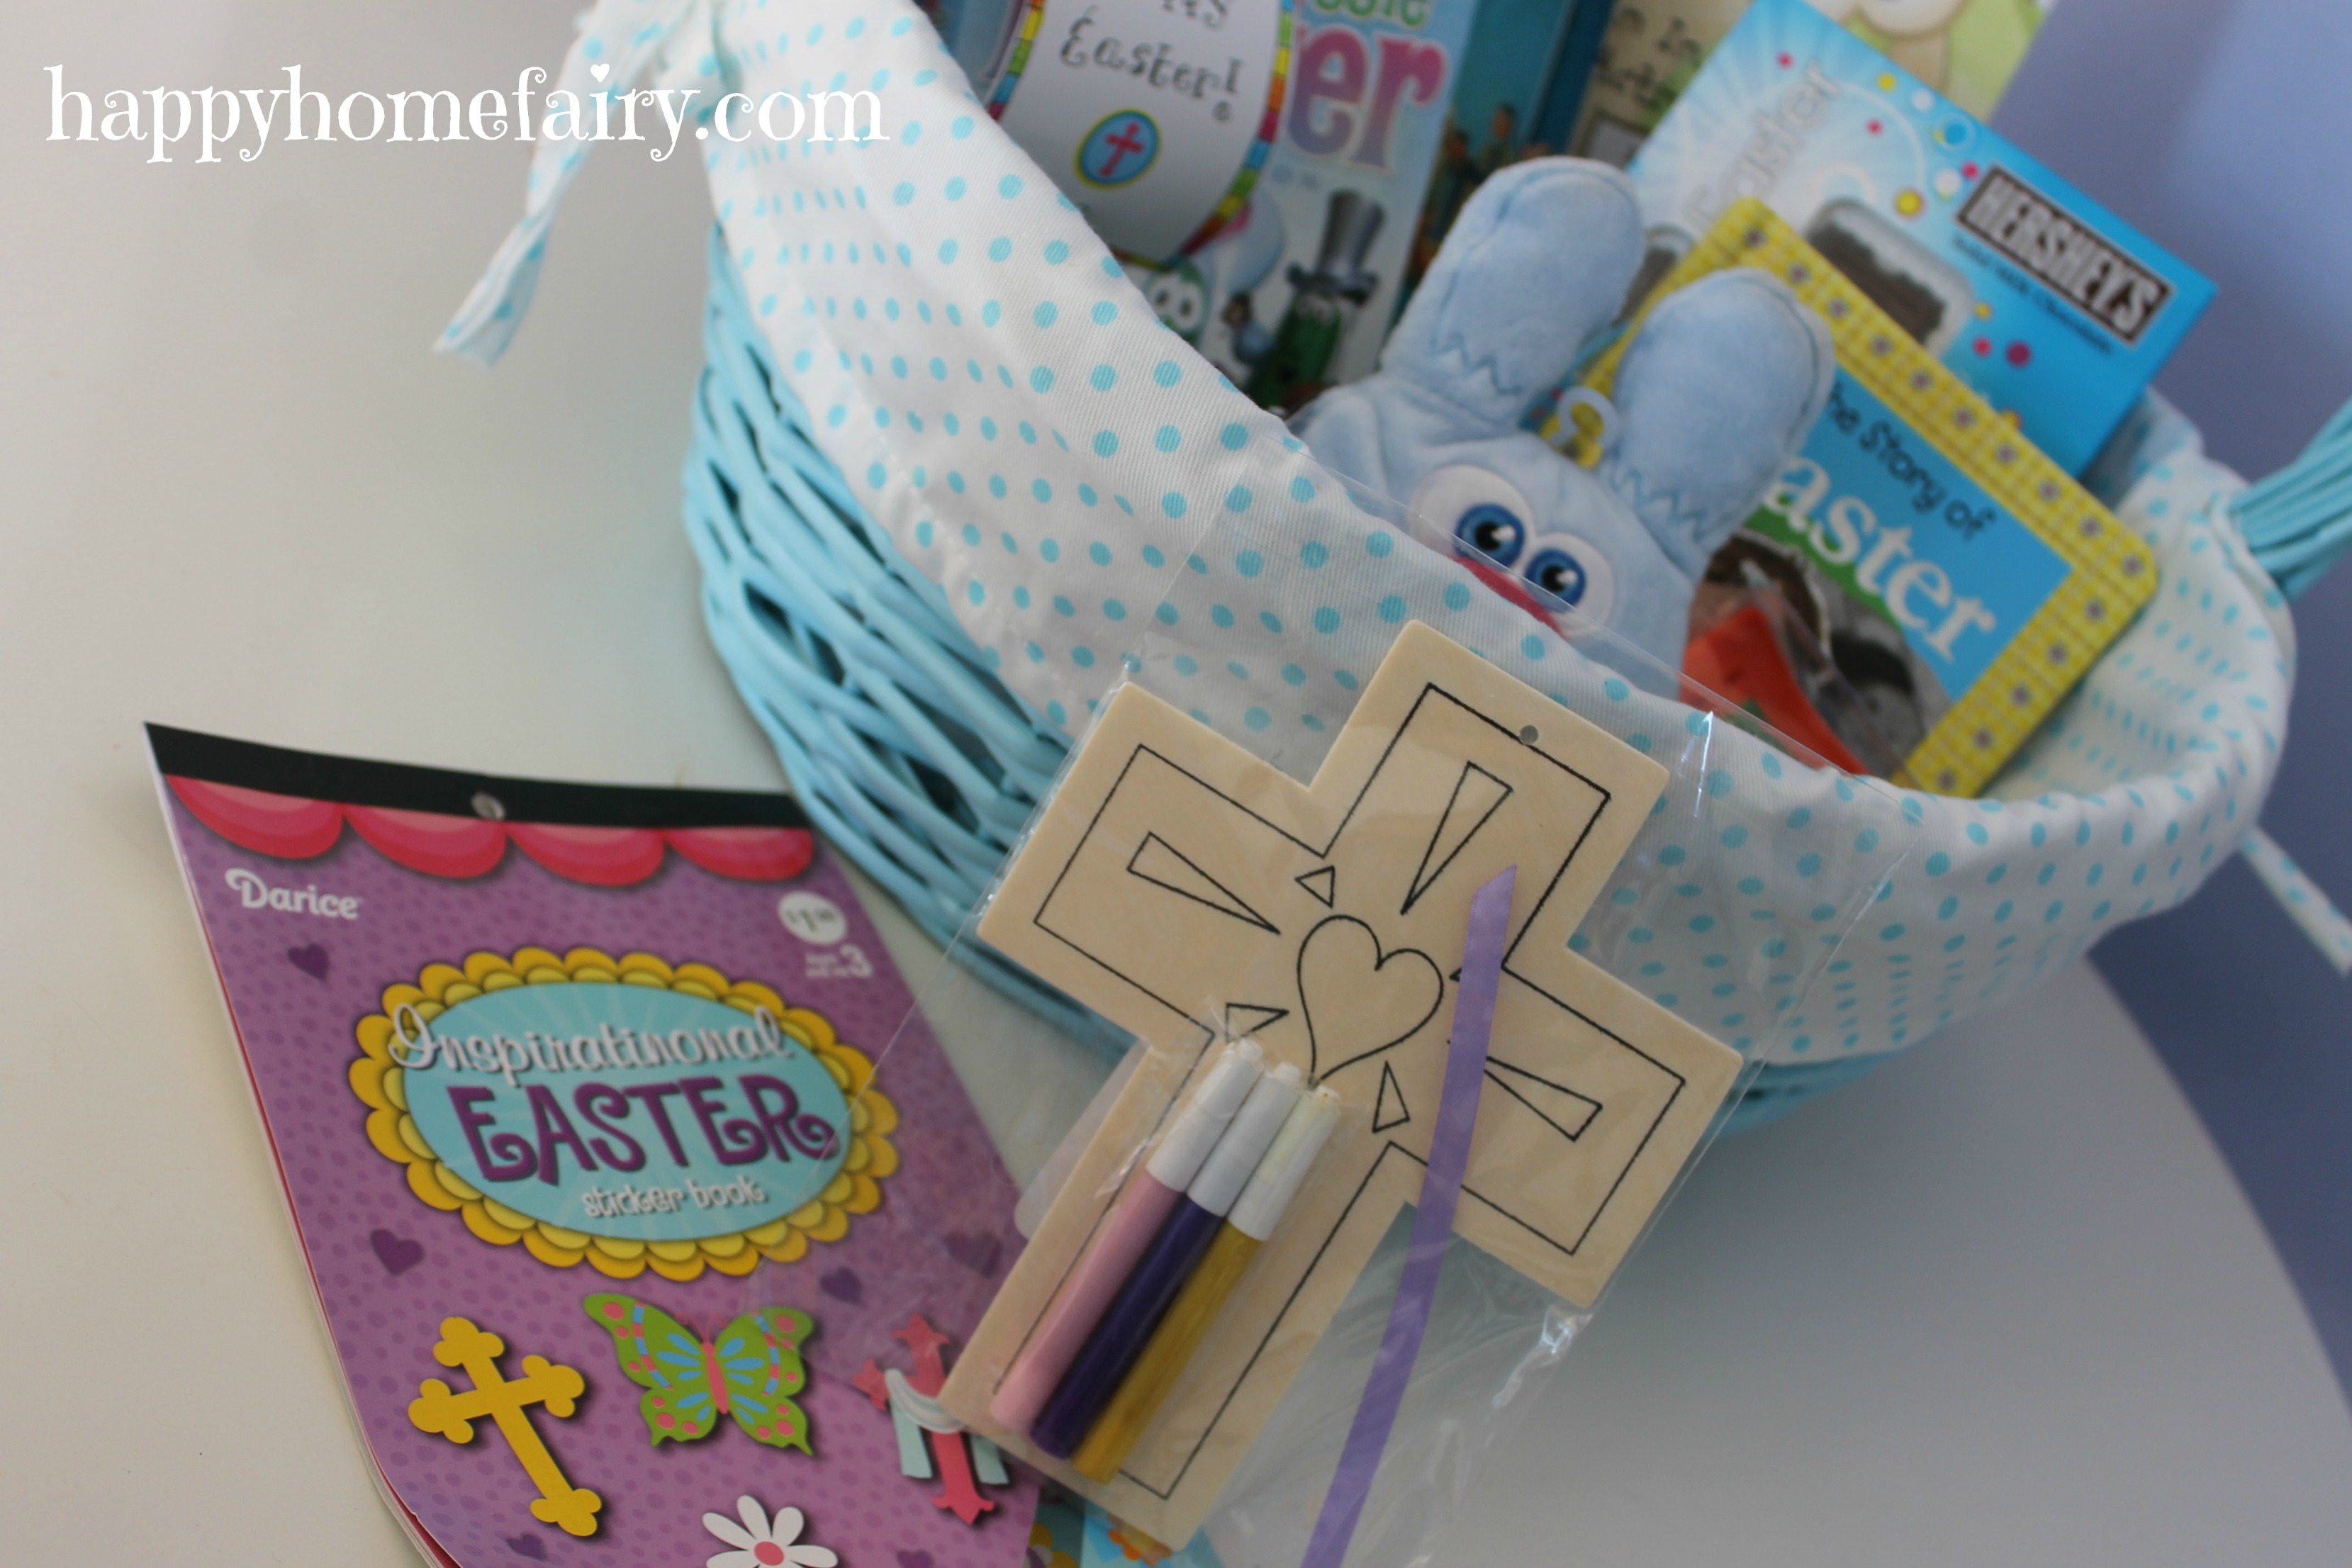 Christ centered easter basket ideas happy home fairy christian easter basket ideas5 negle Gallery